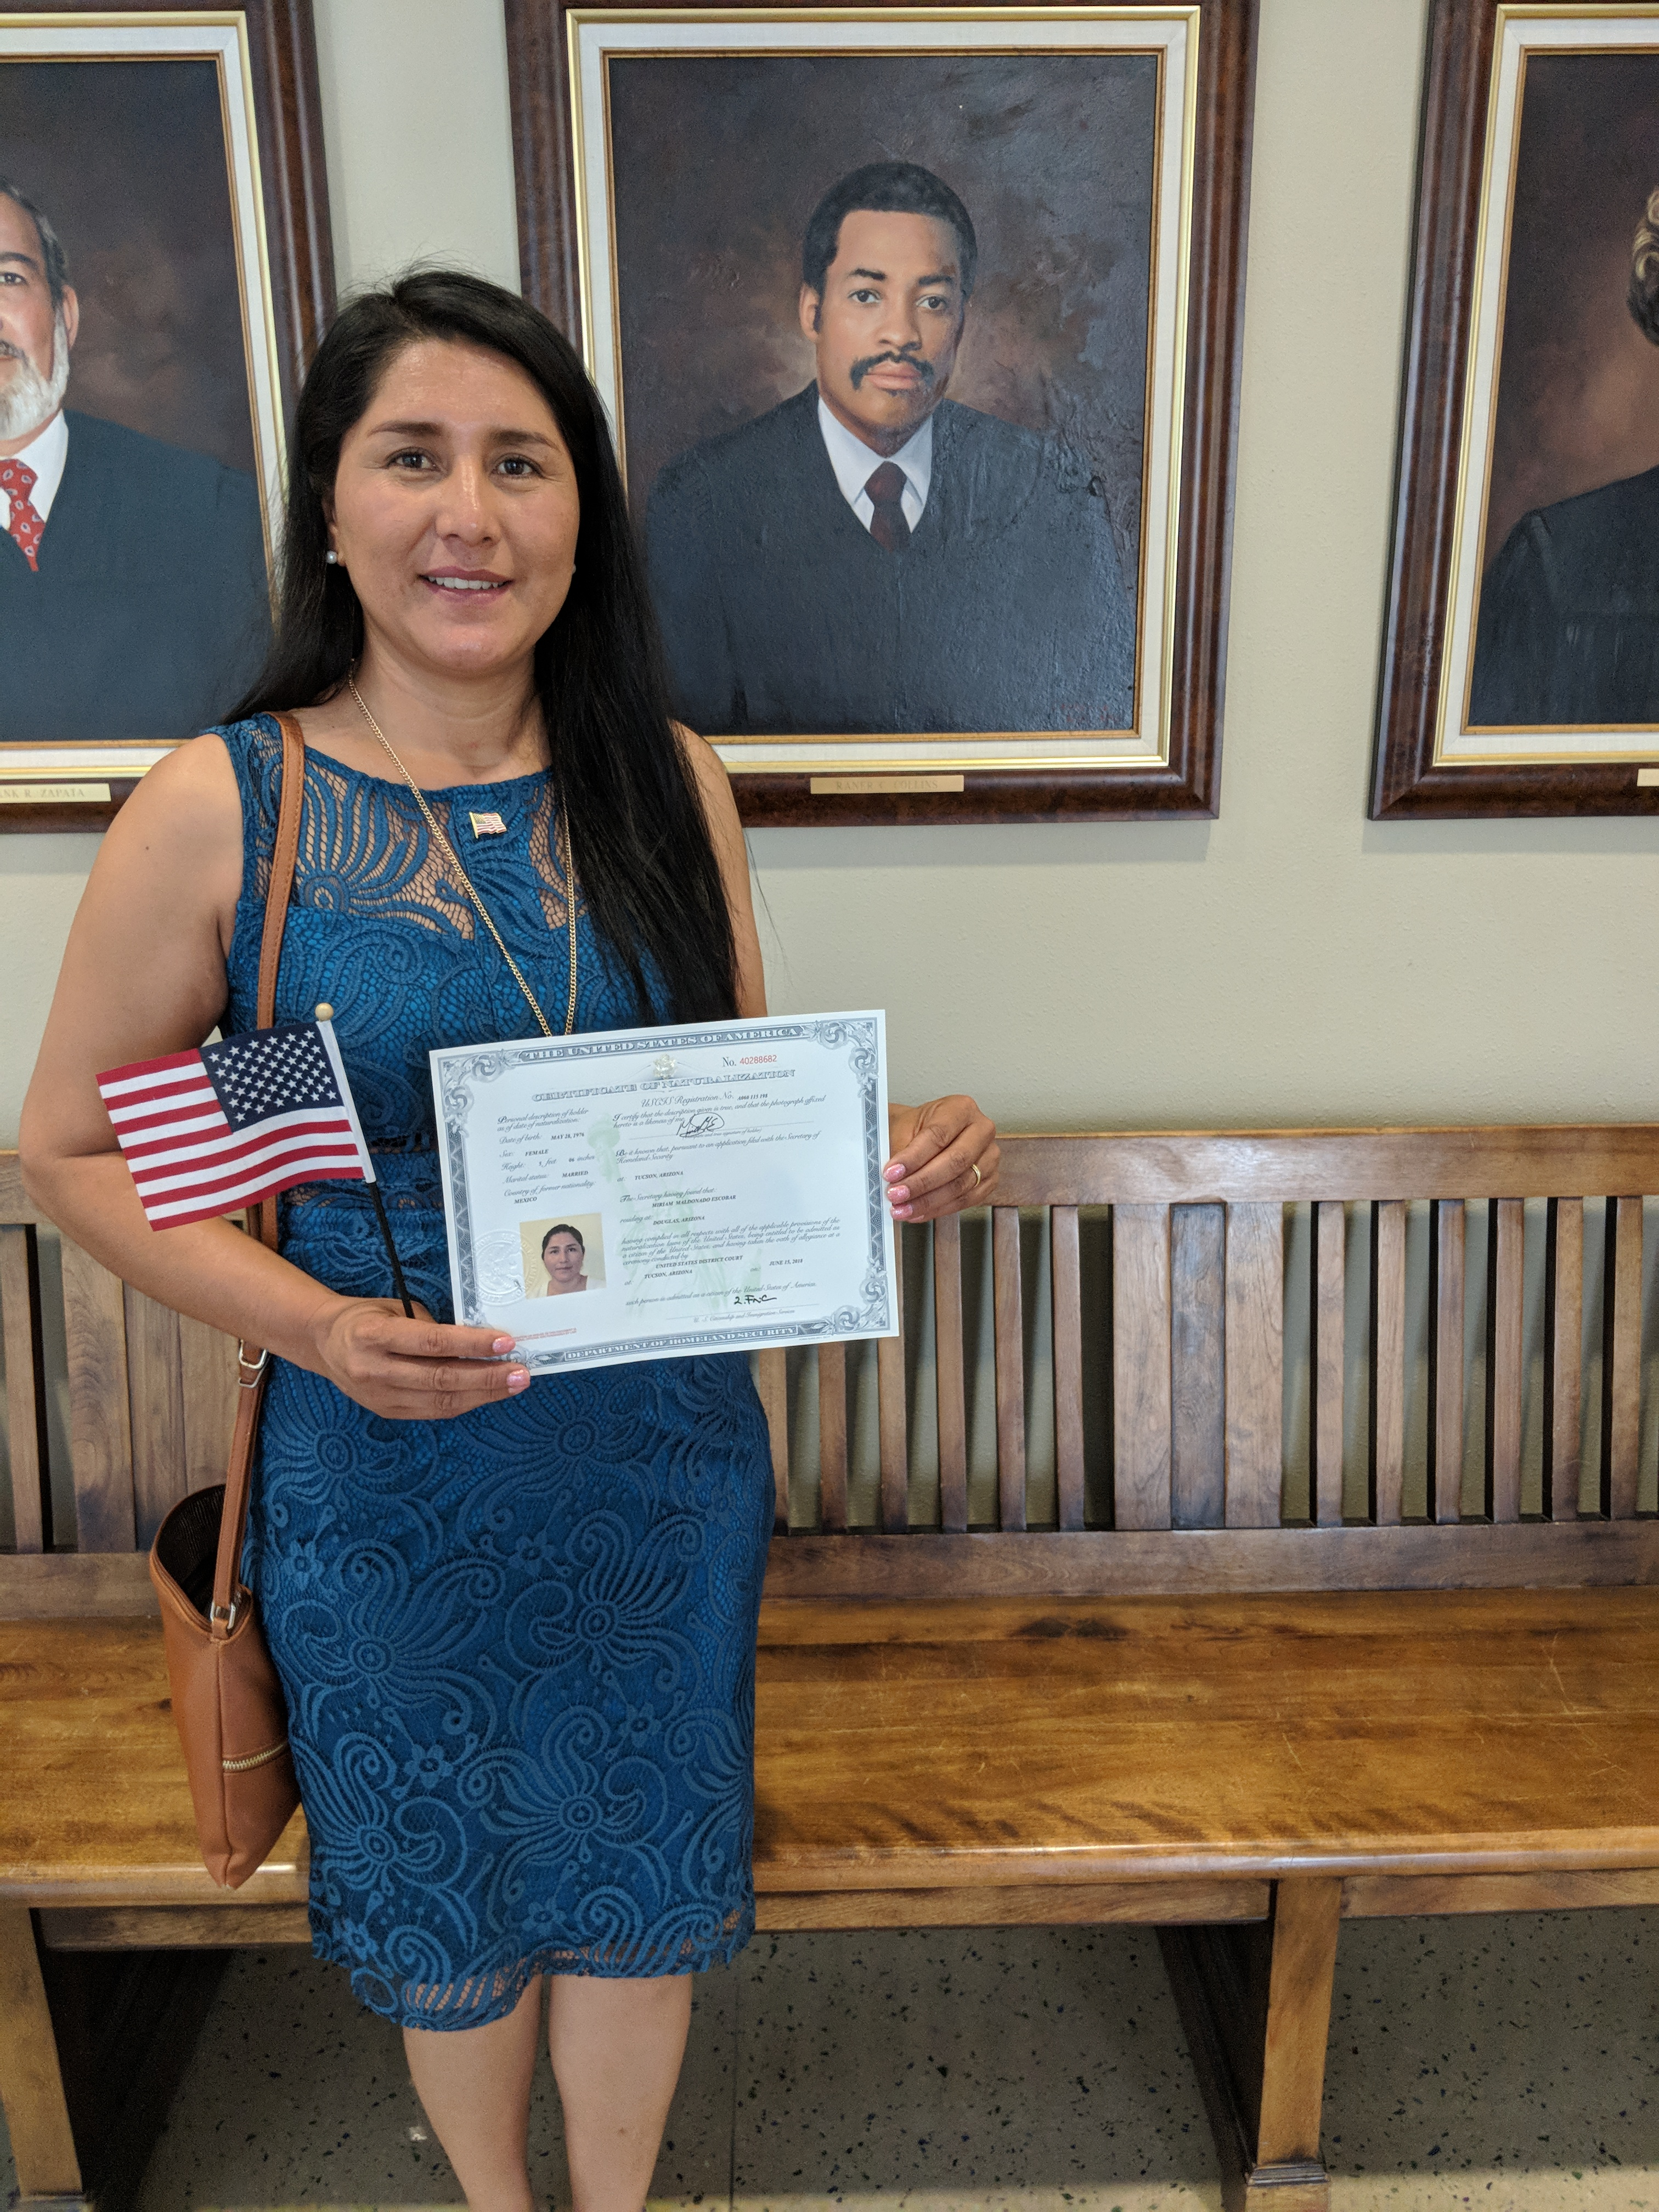 Miriam after the citizenship ceremony.